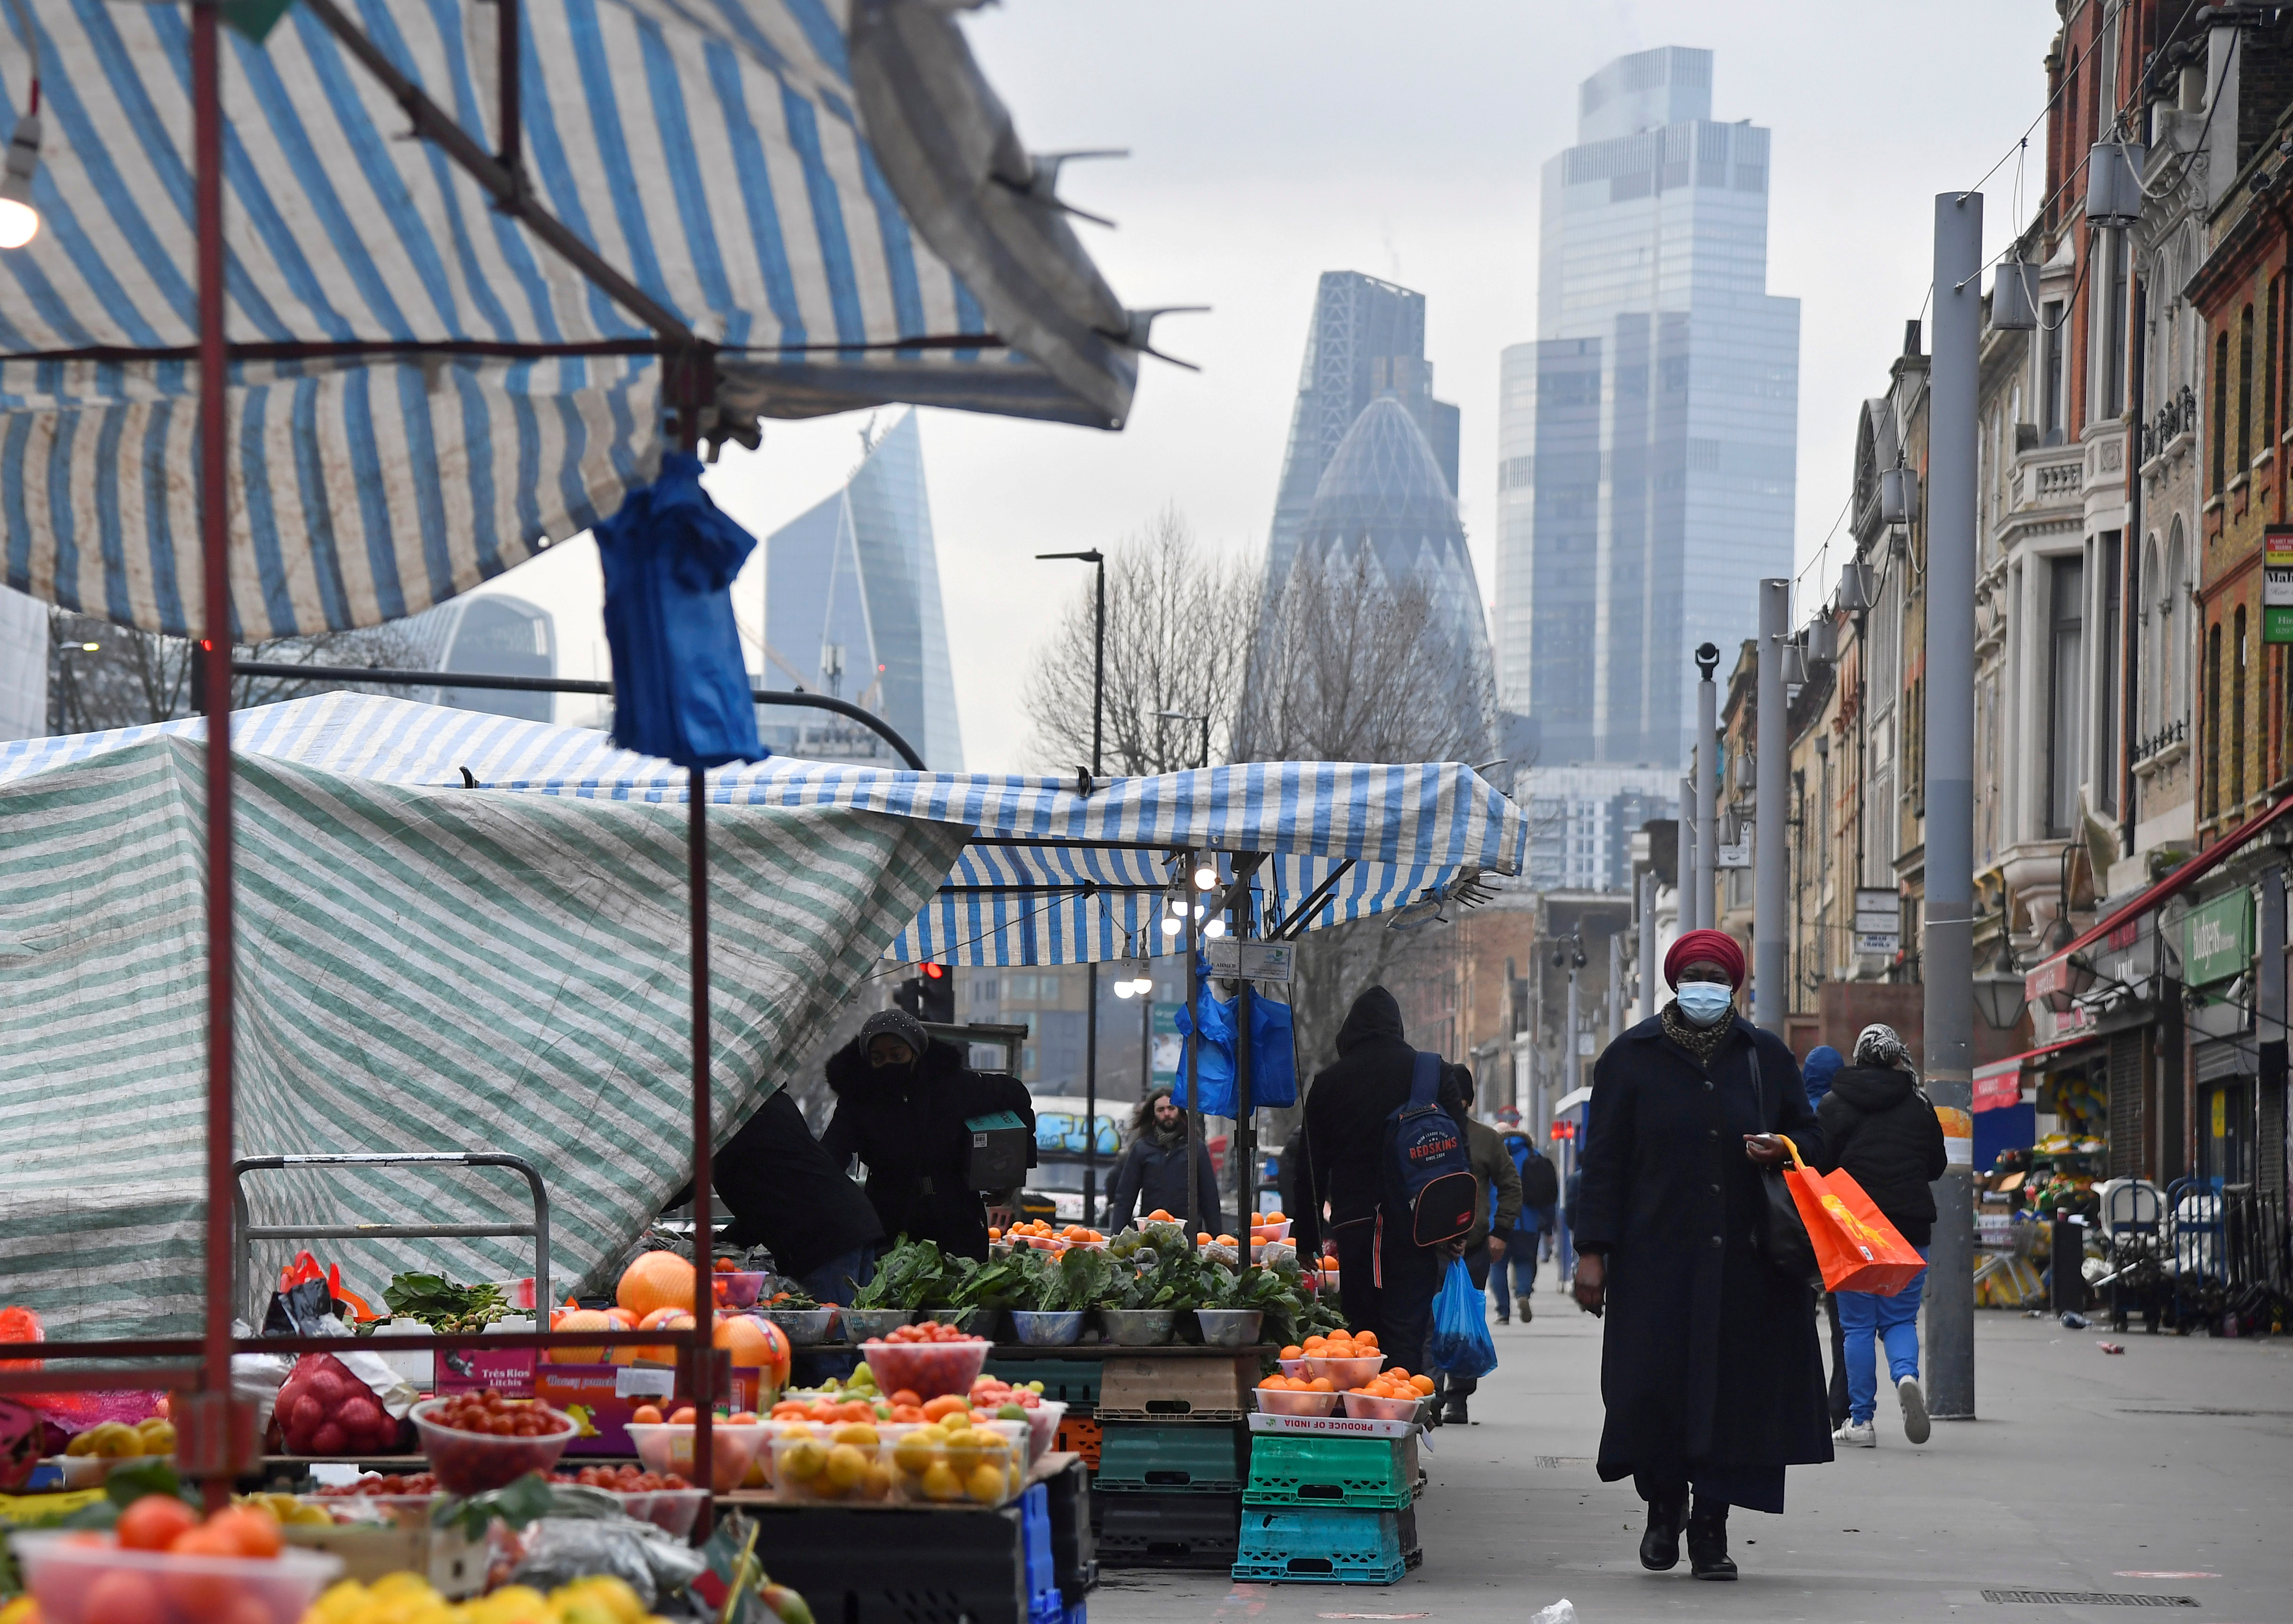 People shop at market stalls, with skyscrapers of the CIty of London financial district seen behind, in London, Britain, January 15, 2021. REUTERS/Toby Melville/File Photo